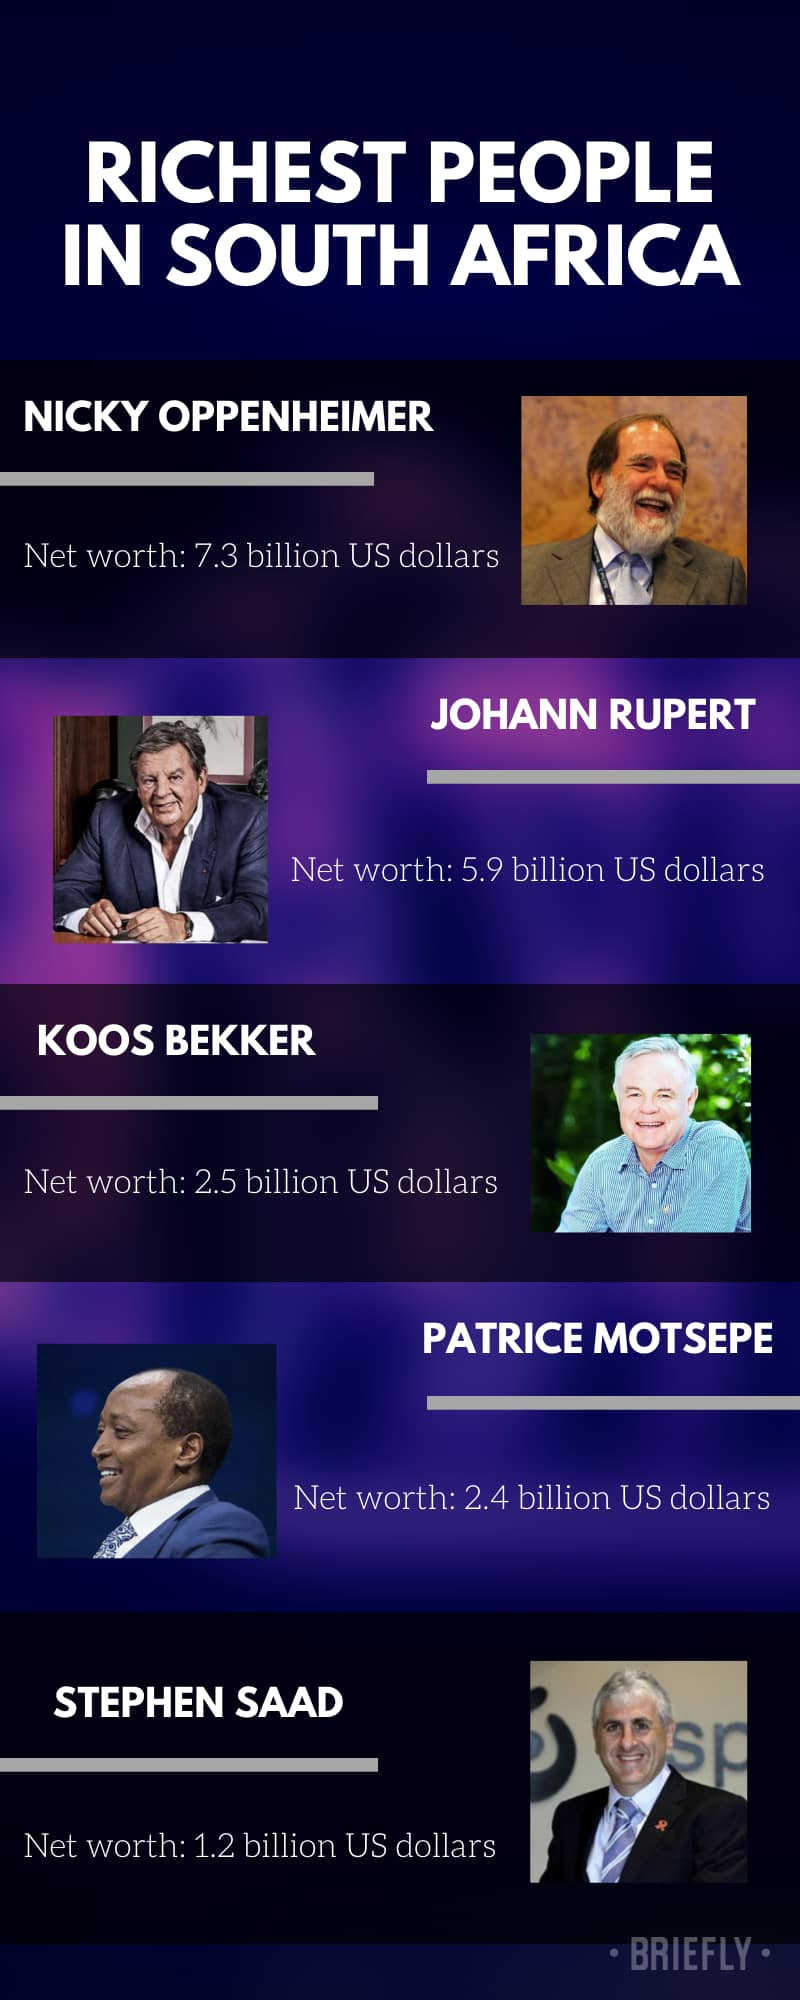 10 richest people in South Africa